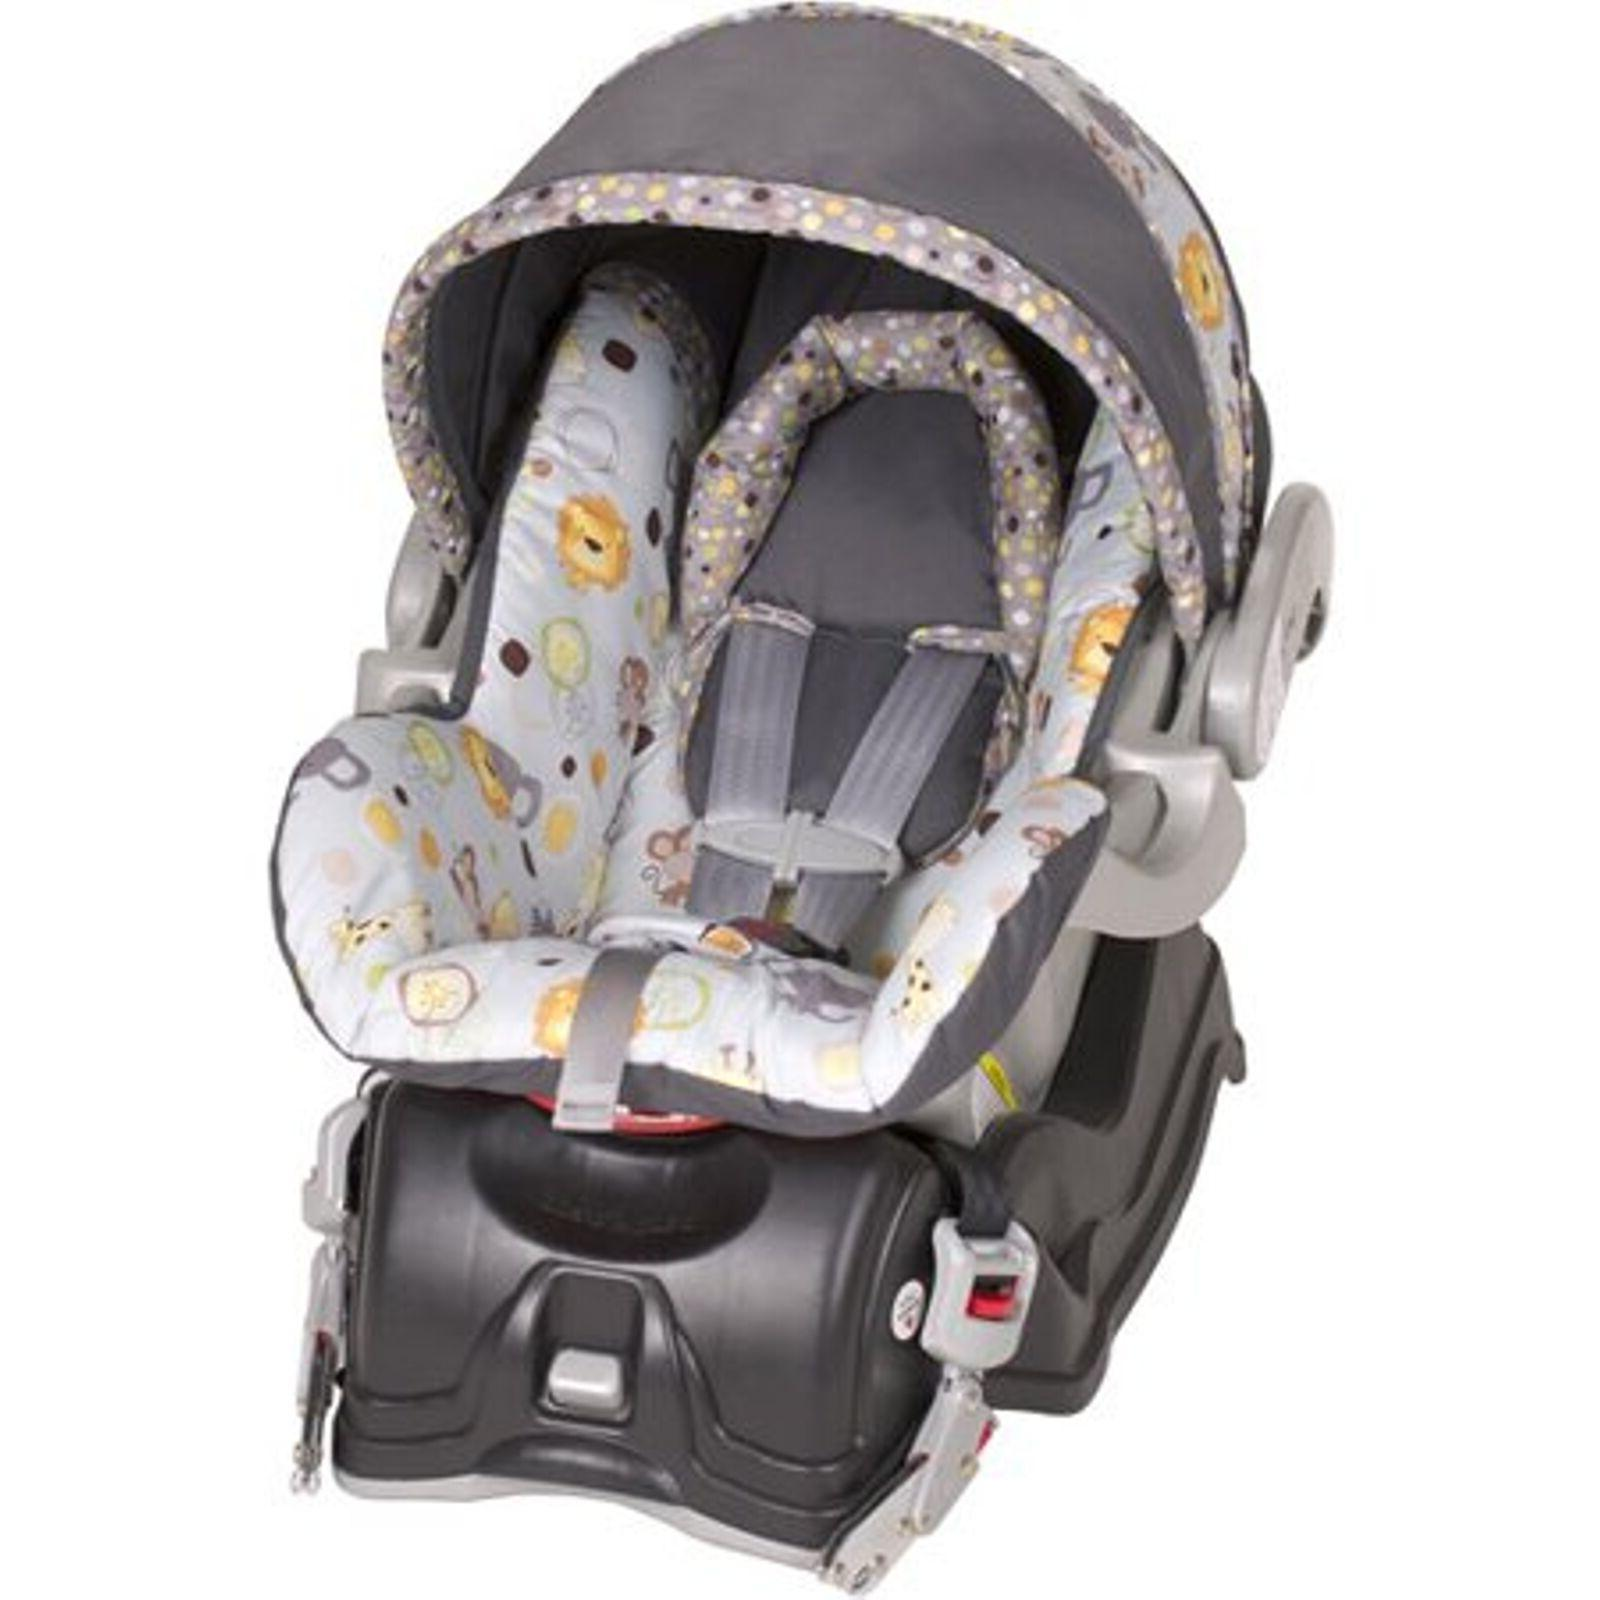 BABY System Infant Carriage